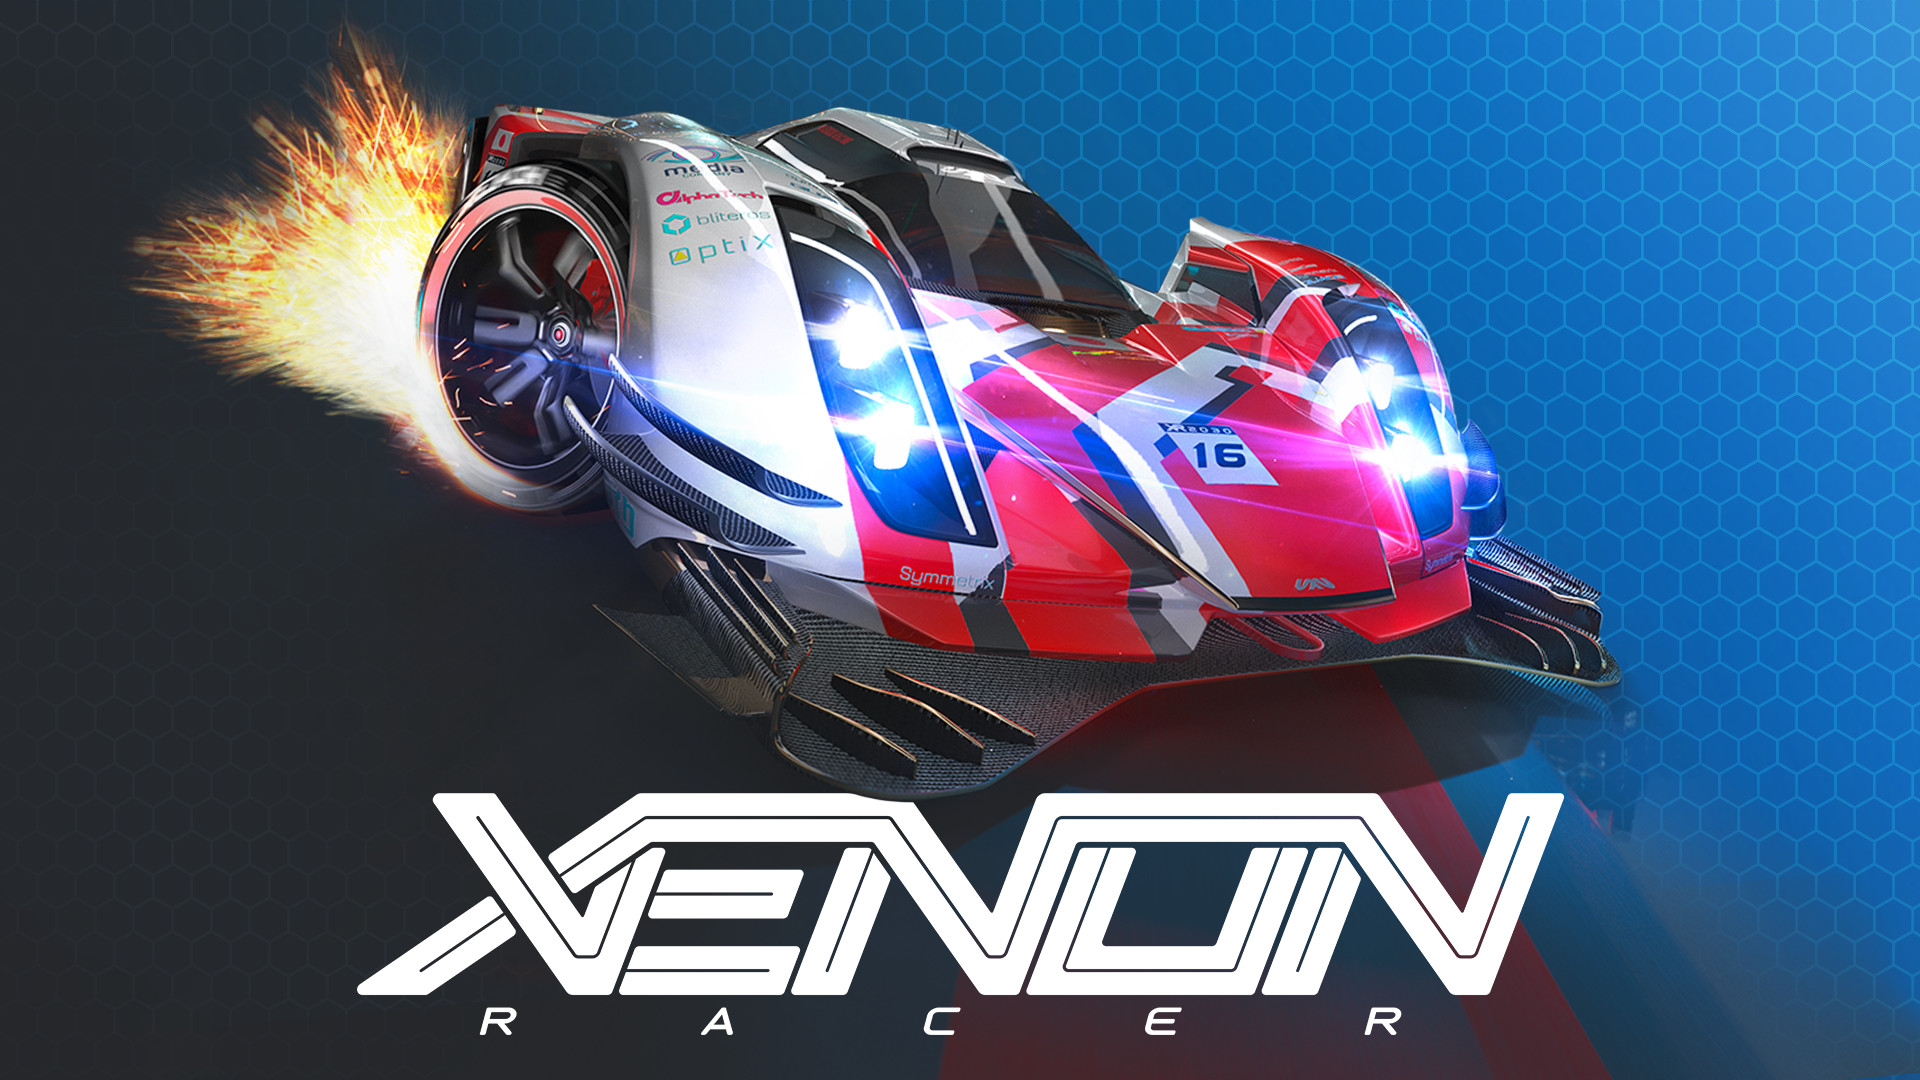 Photo of Arcade Racing is coming back thanks to Xenon Racer, launching tomorrow